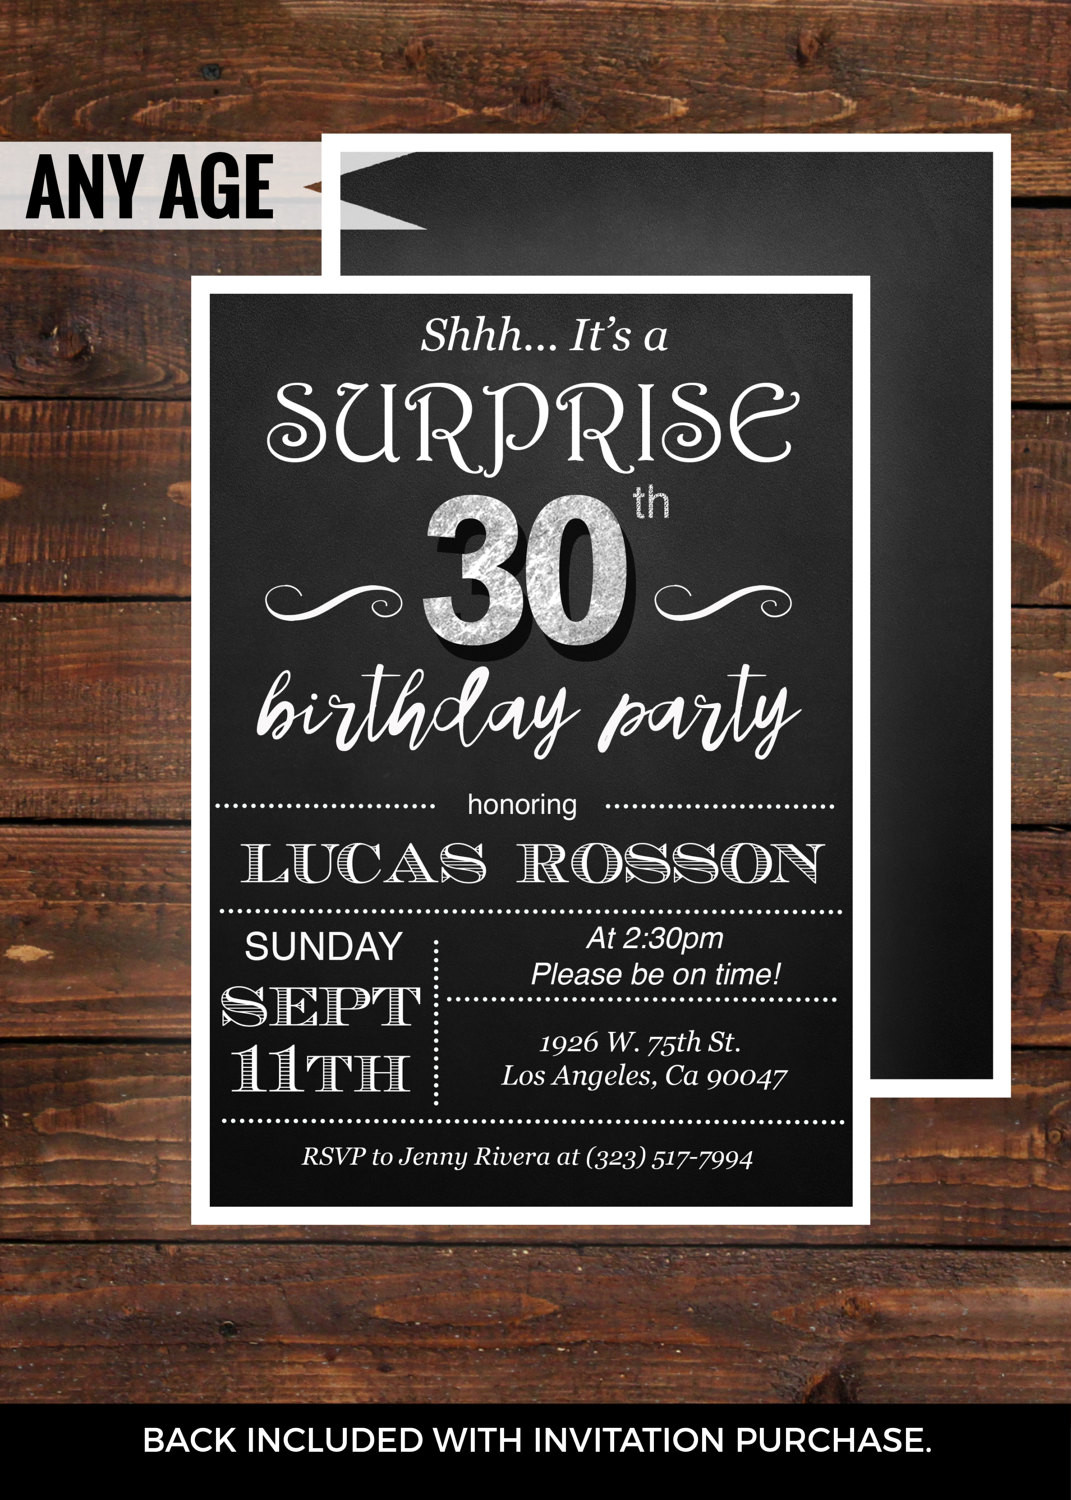 Best ideas about Surprise 30th Birthday Invitations . Save or Pin Surprise 30th birthday invitations for him by Now.